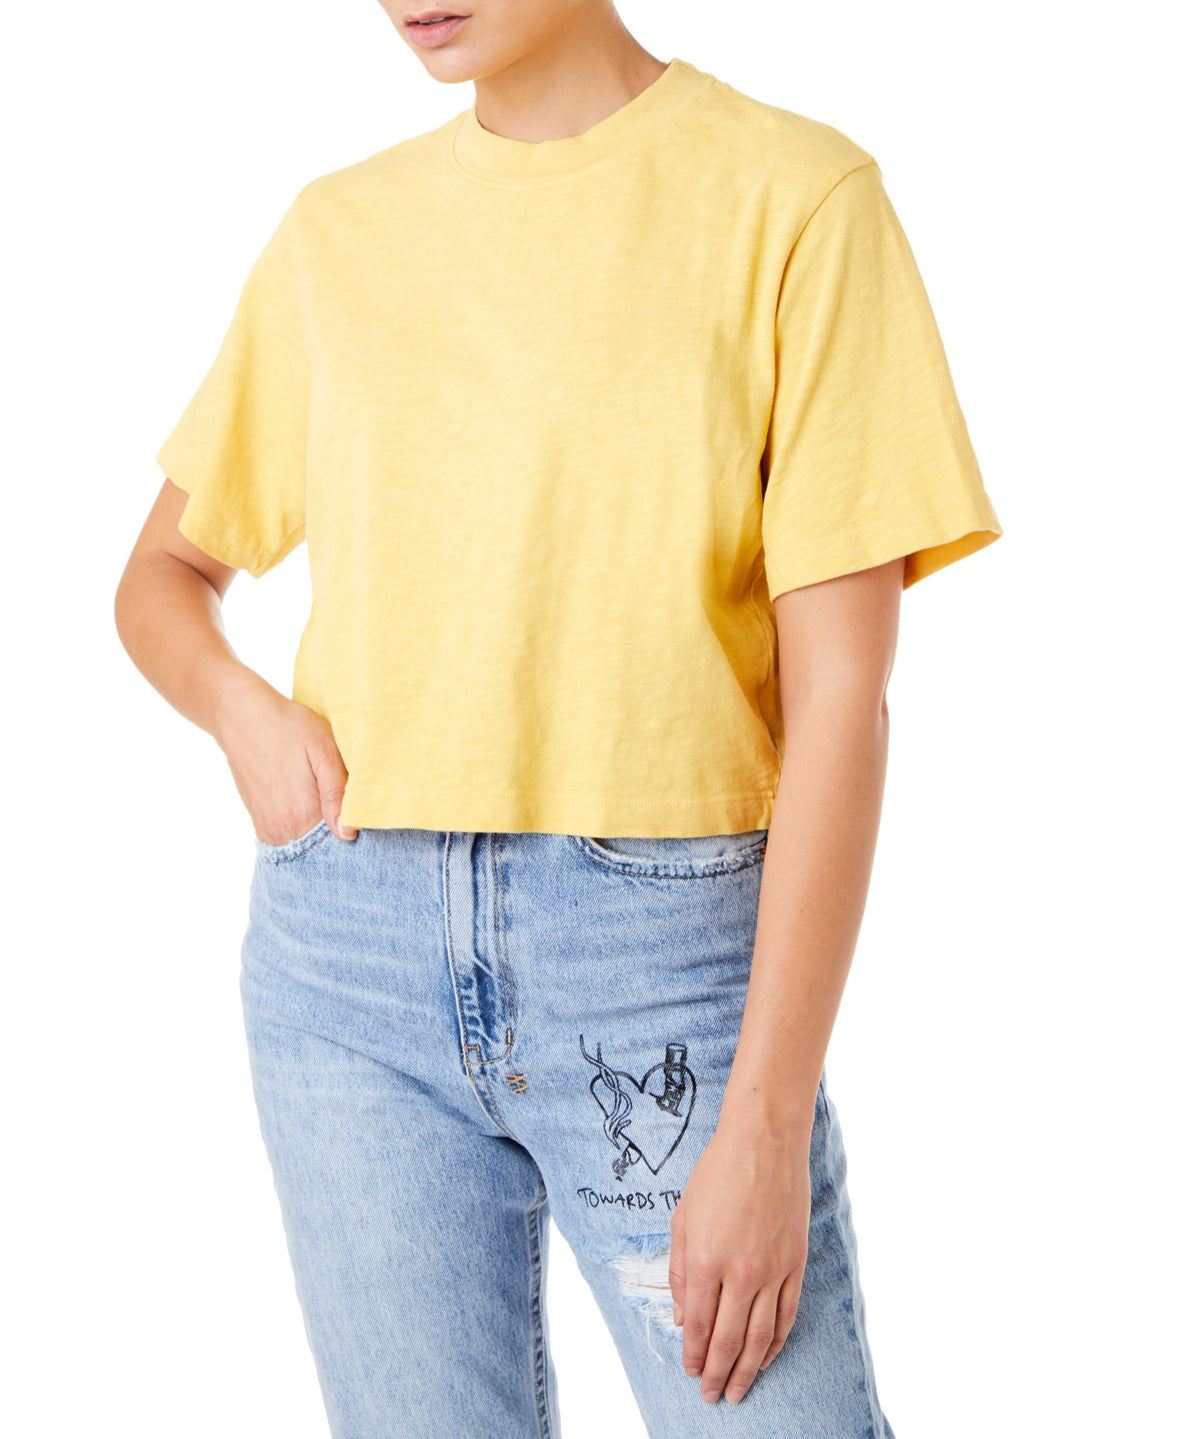 Cotton Citizen Tokyo Crop Women Yellow T-shirt